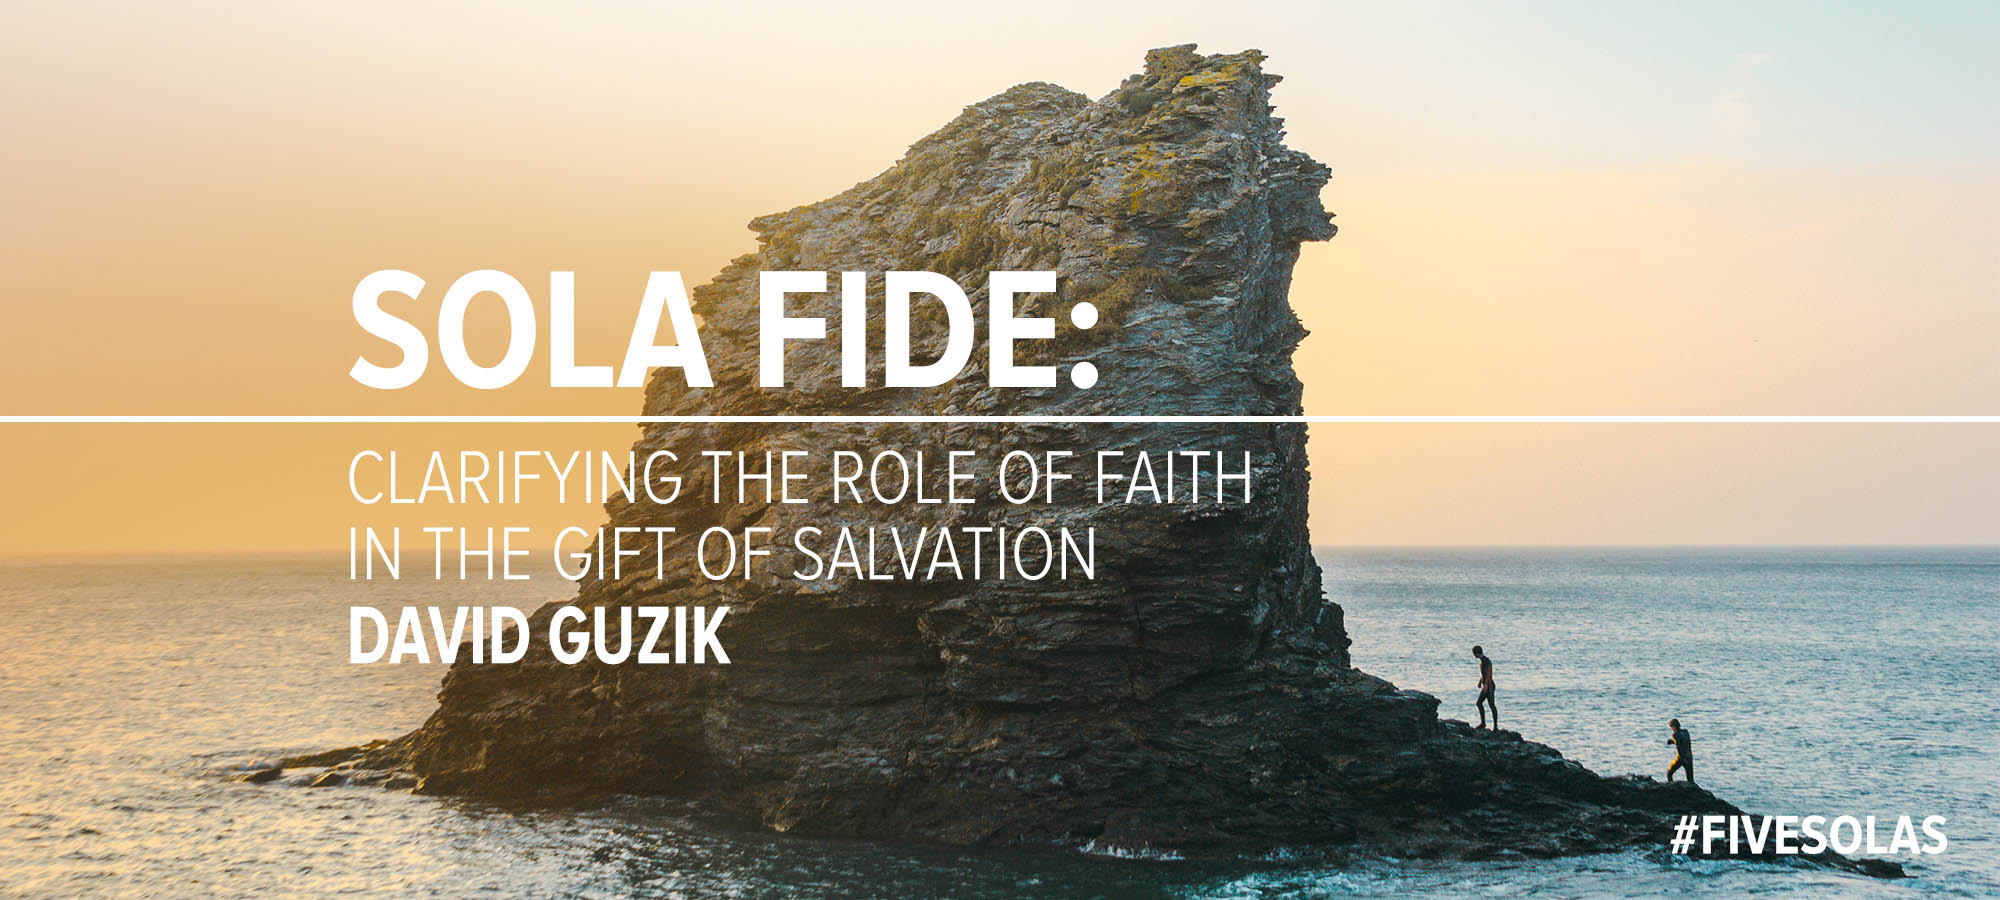 Sola Fide: Clarifying the Role of Faith in the Gift of Salvation